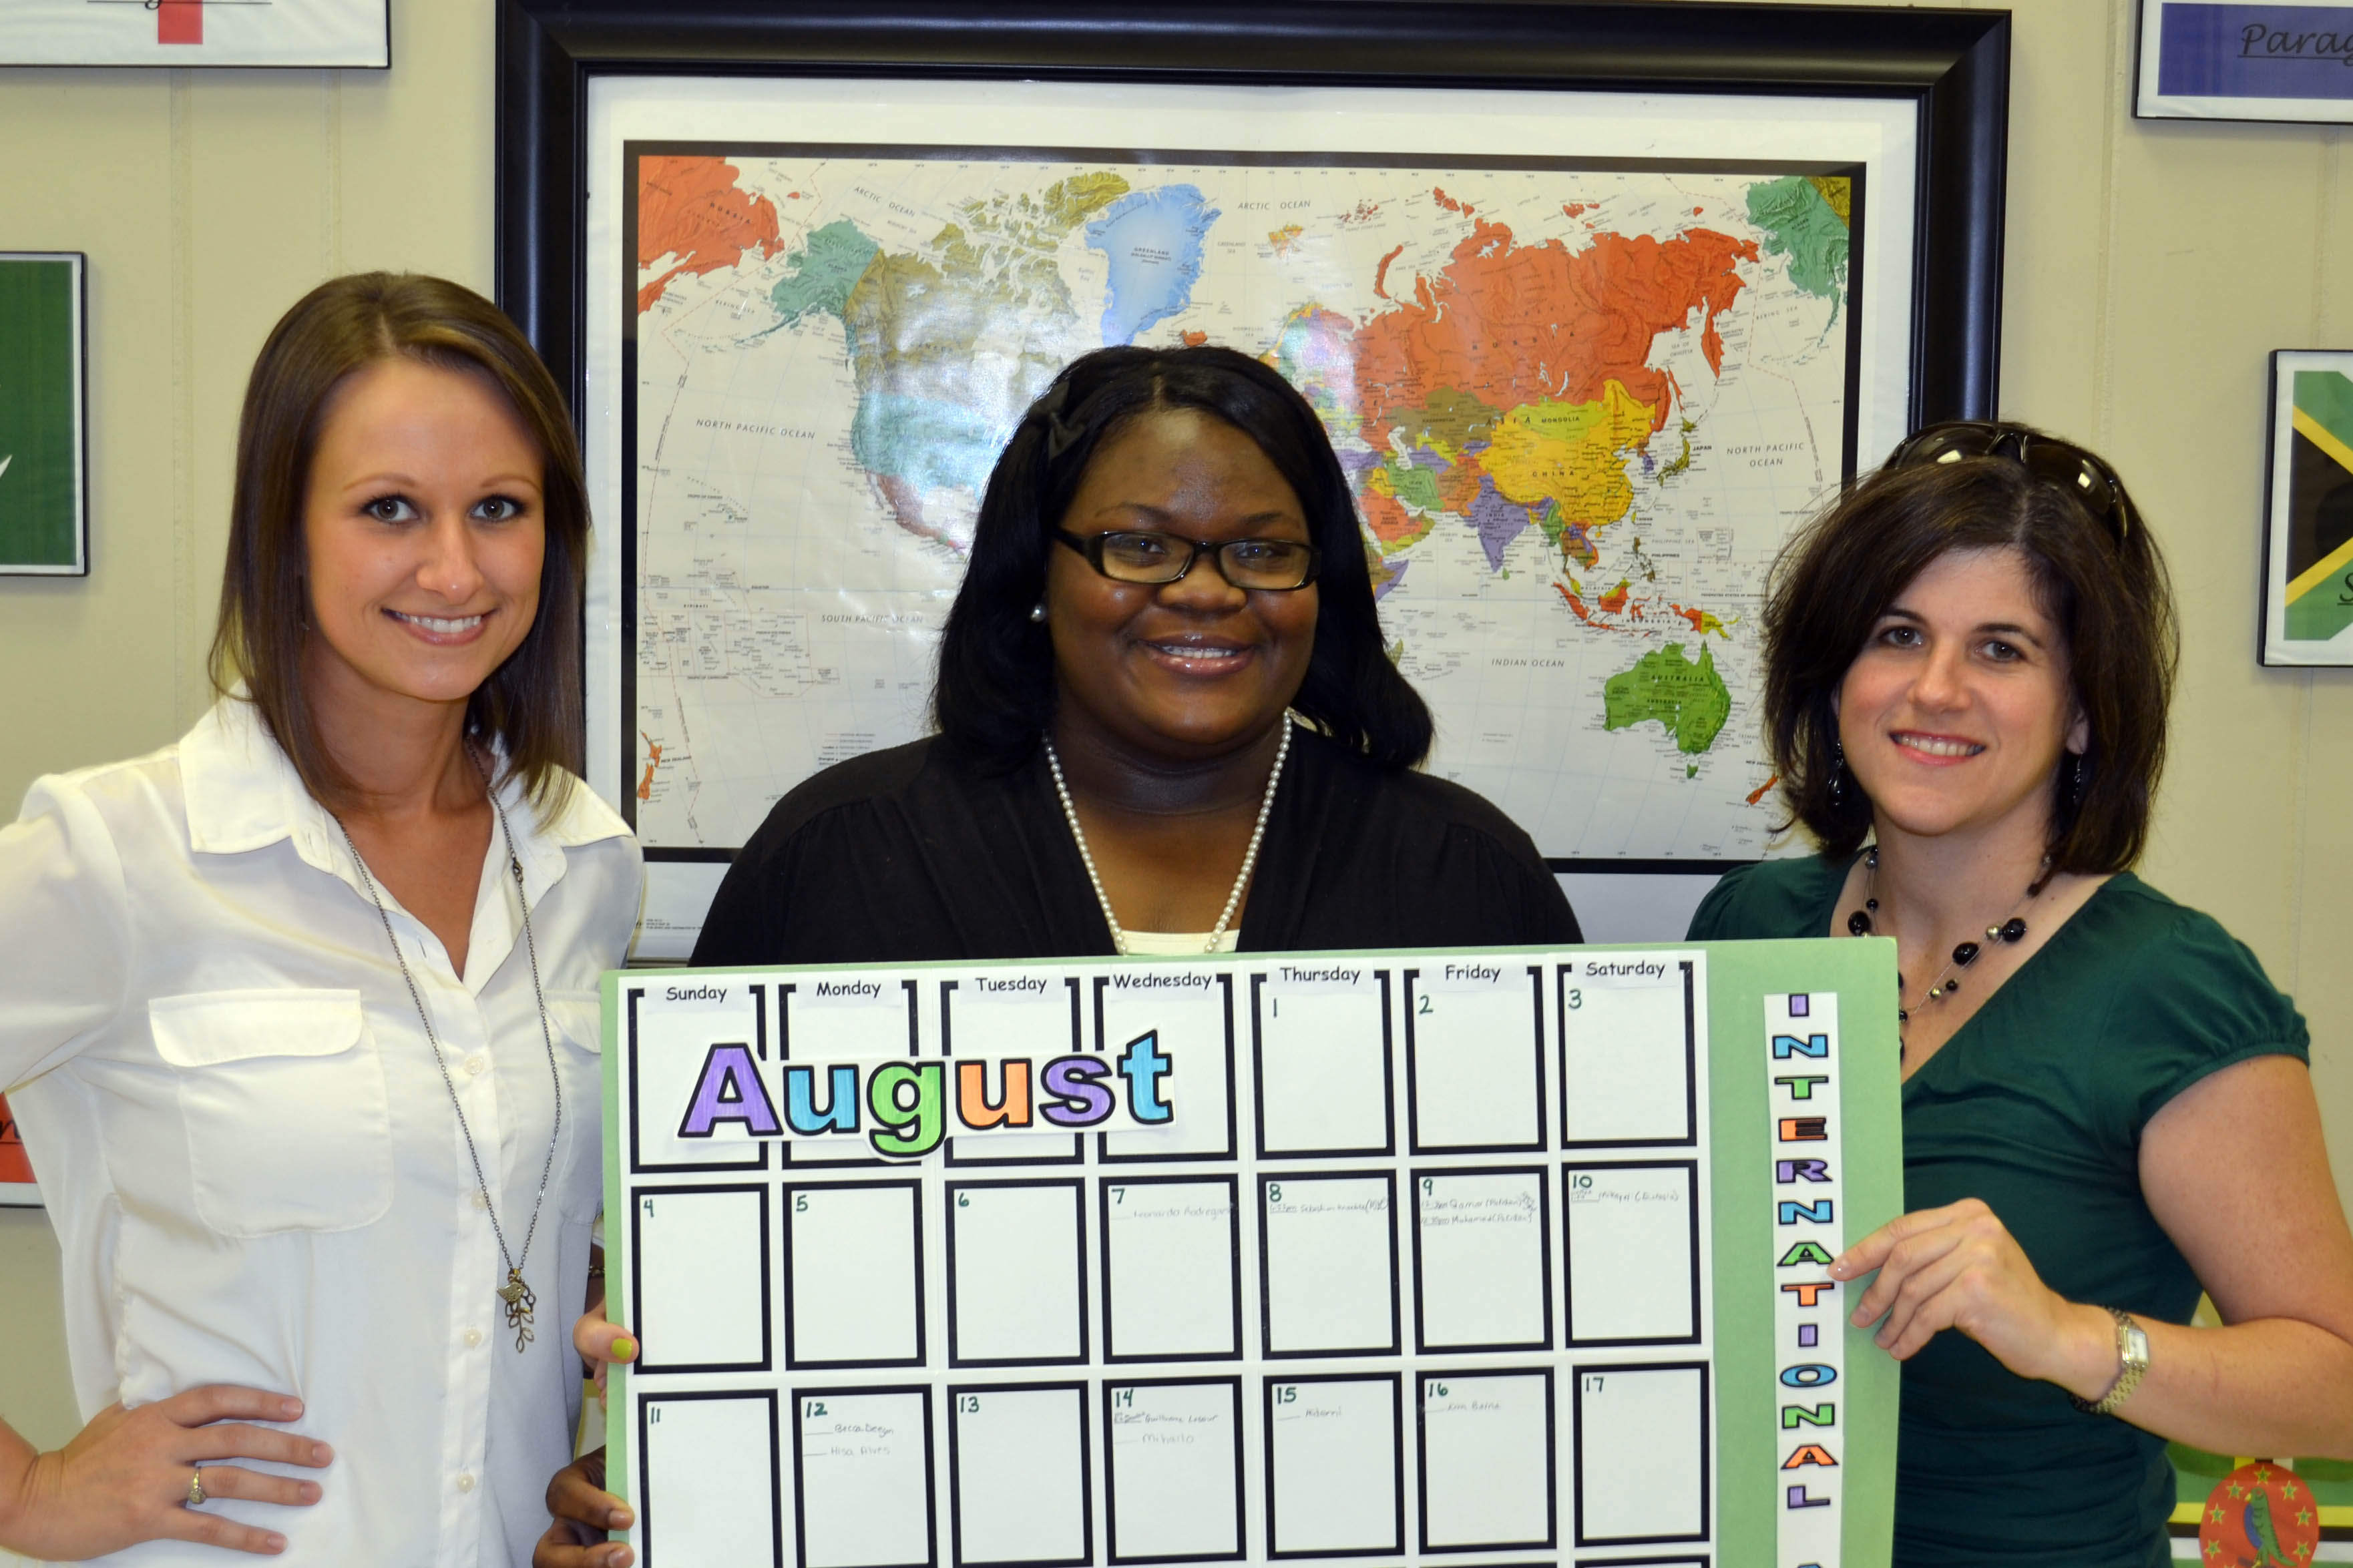 Student Success Center staff serve as mentors to international students.